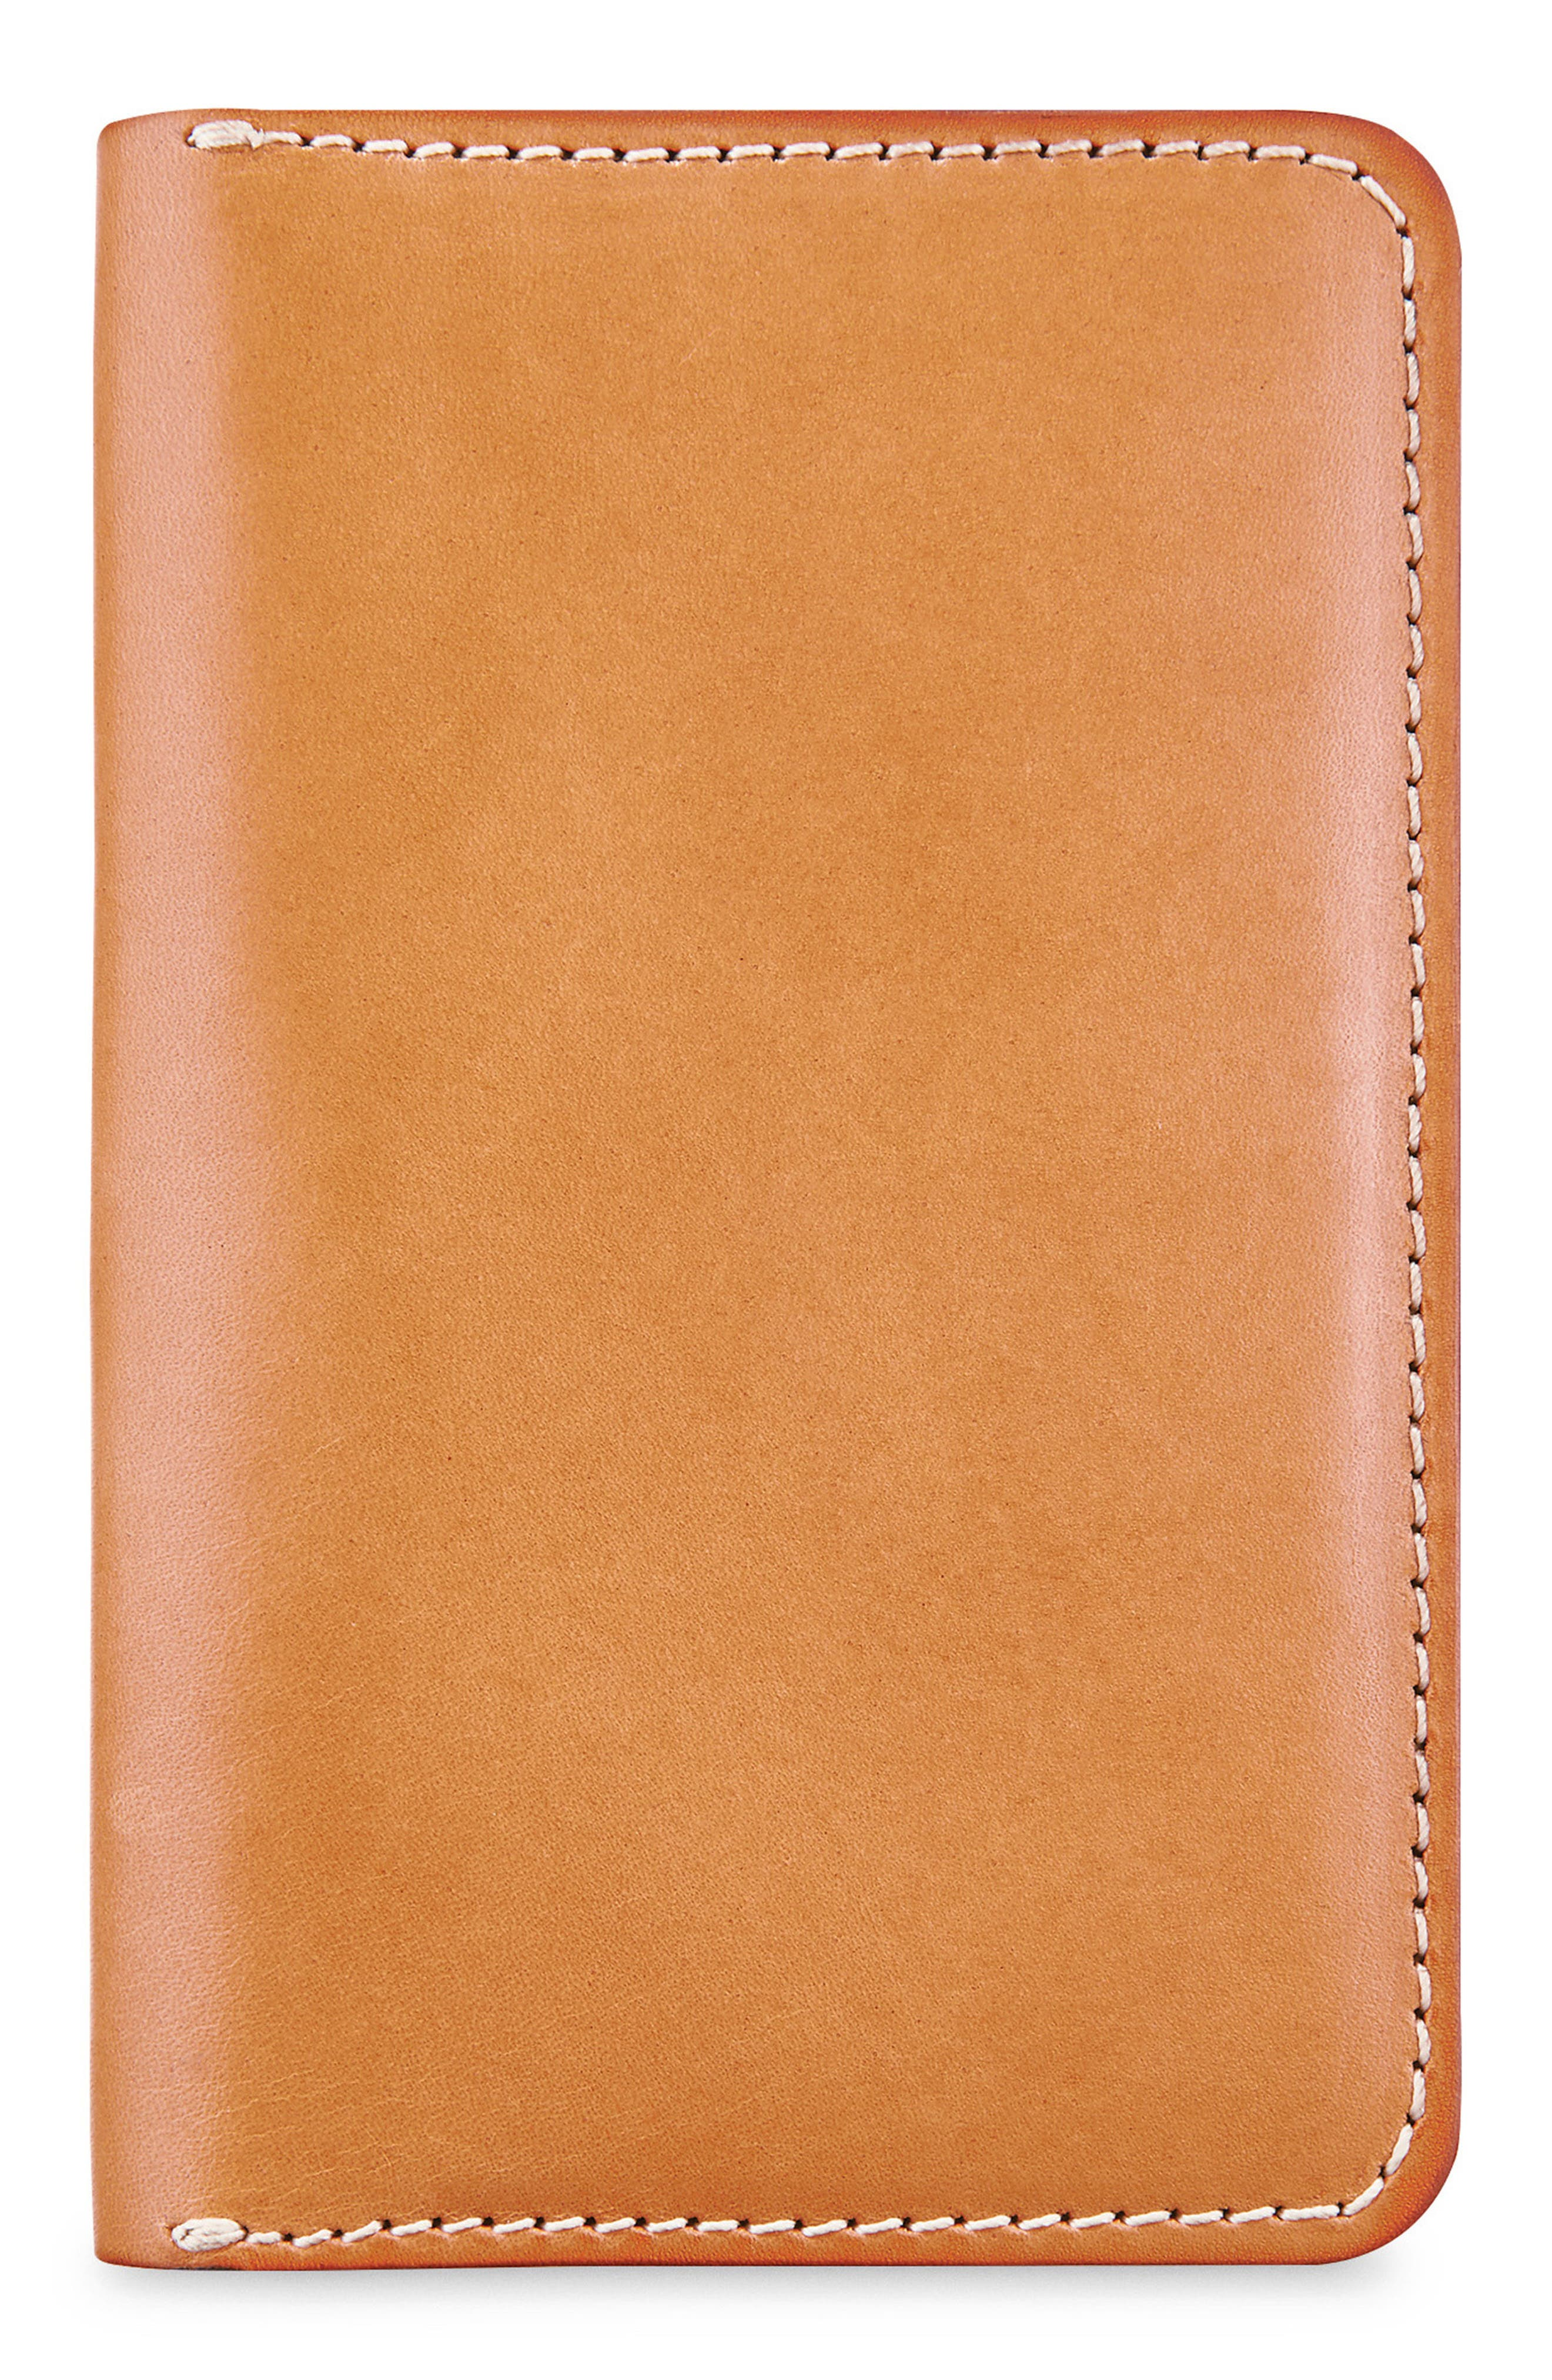 Leather Passport Wallet,                             Main thumbnail 1, color,                             Tanned Vegetable